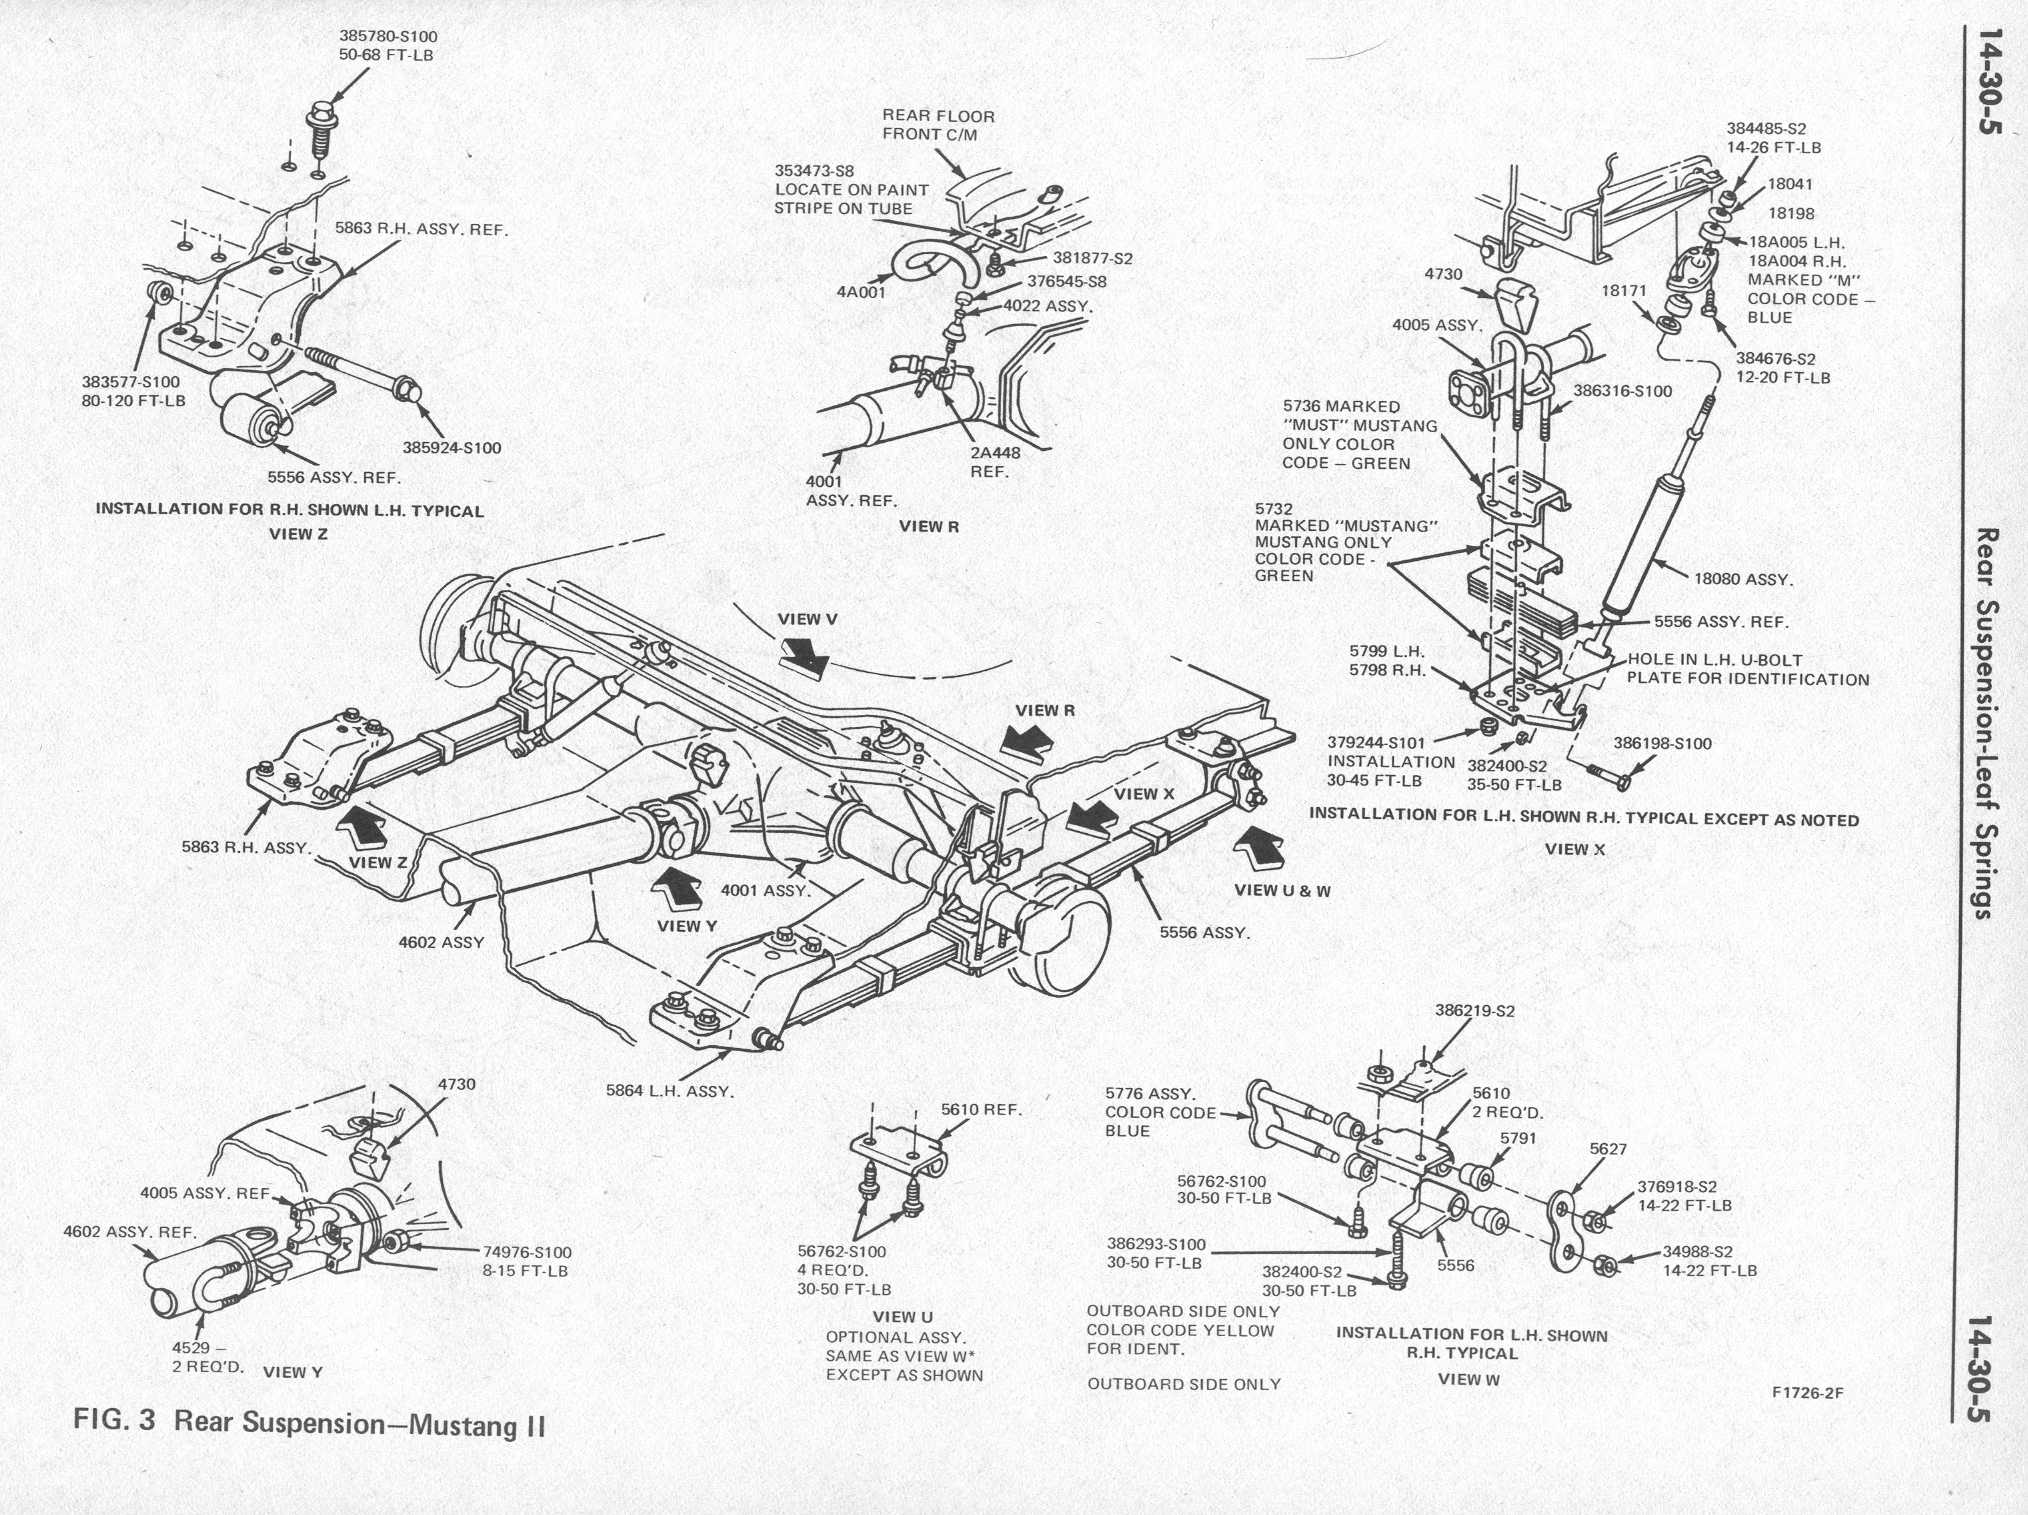 1978 Ford Mustang 2 Wiring Diagram Library 2005 F150 Ignition Diagrams We Also Have A Very Large 300kb View